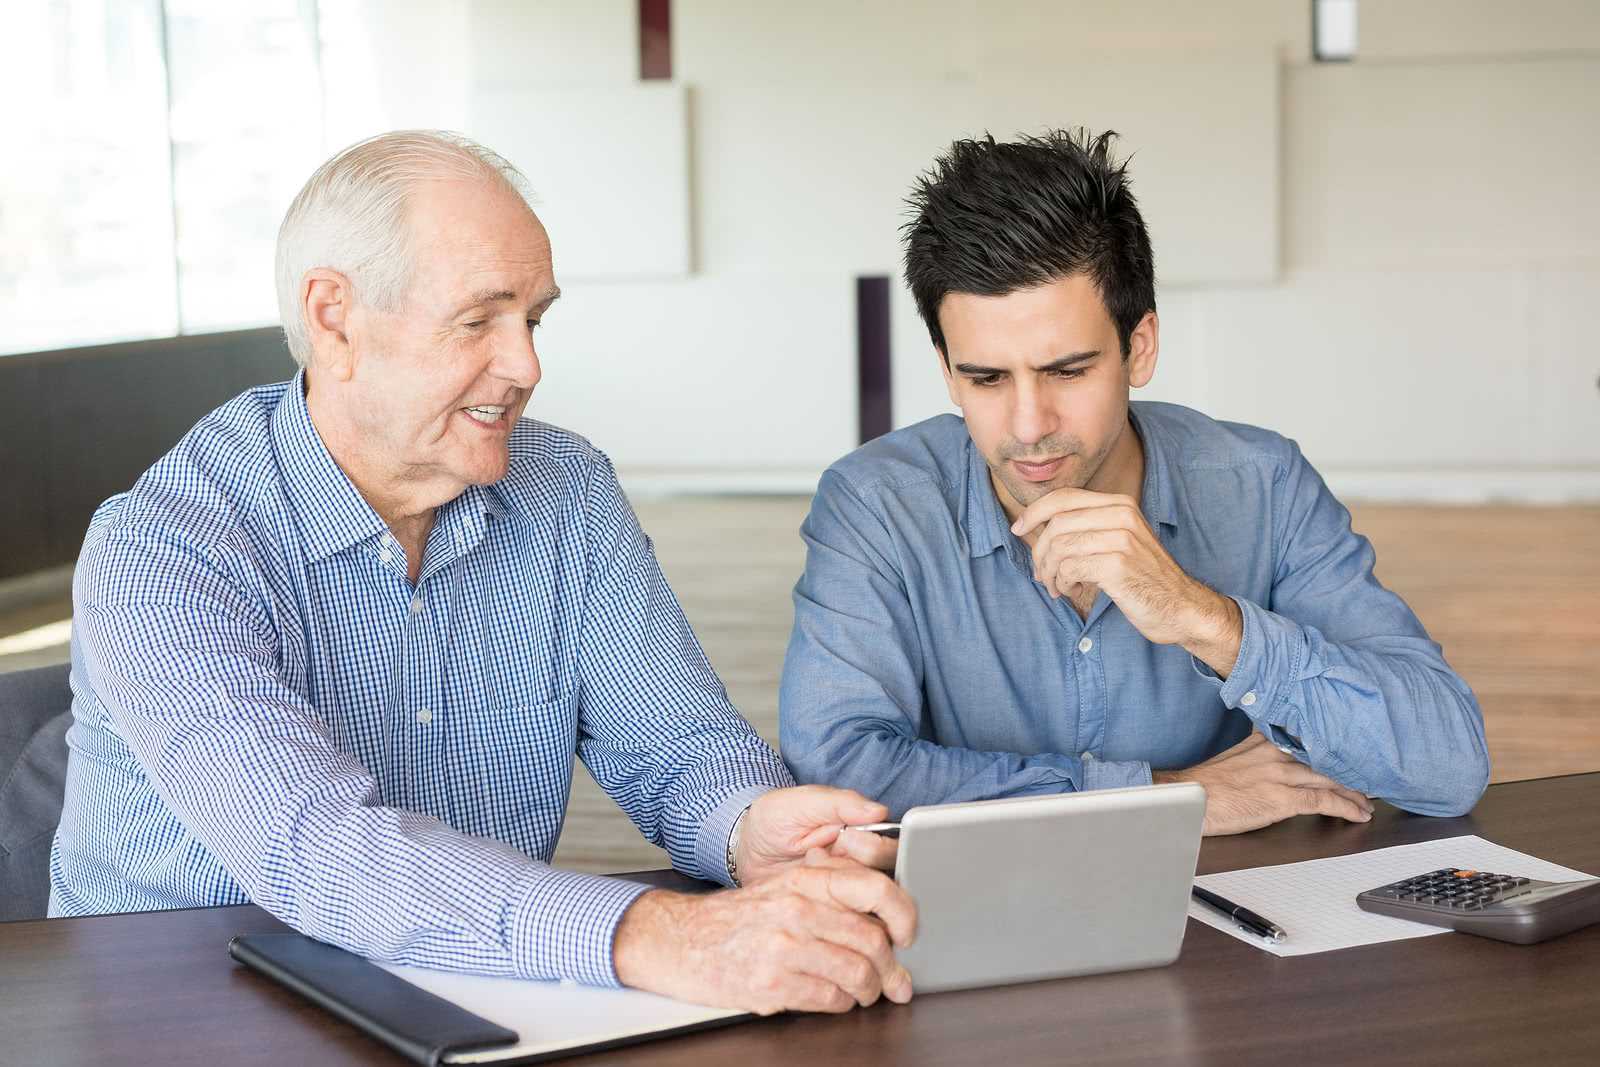 Senior business owner showing younger owner his small business network